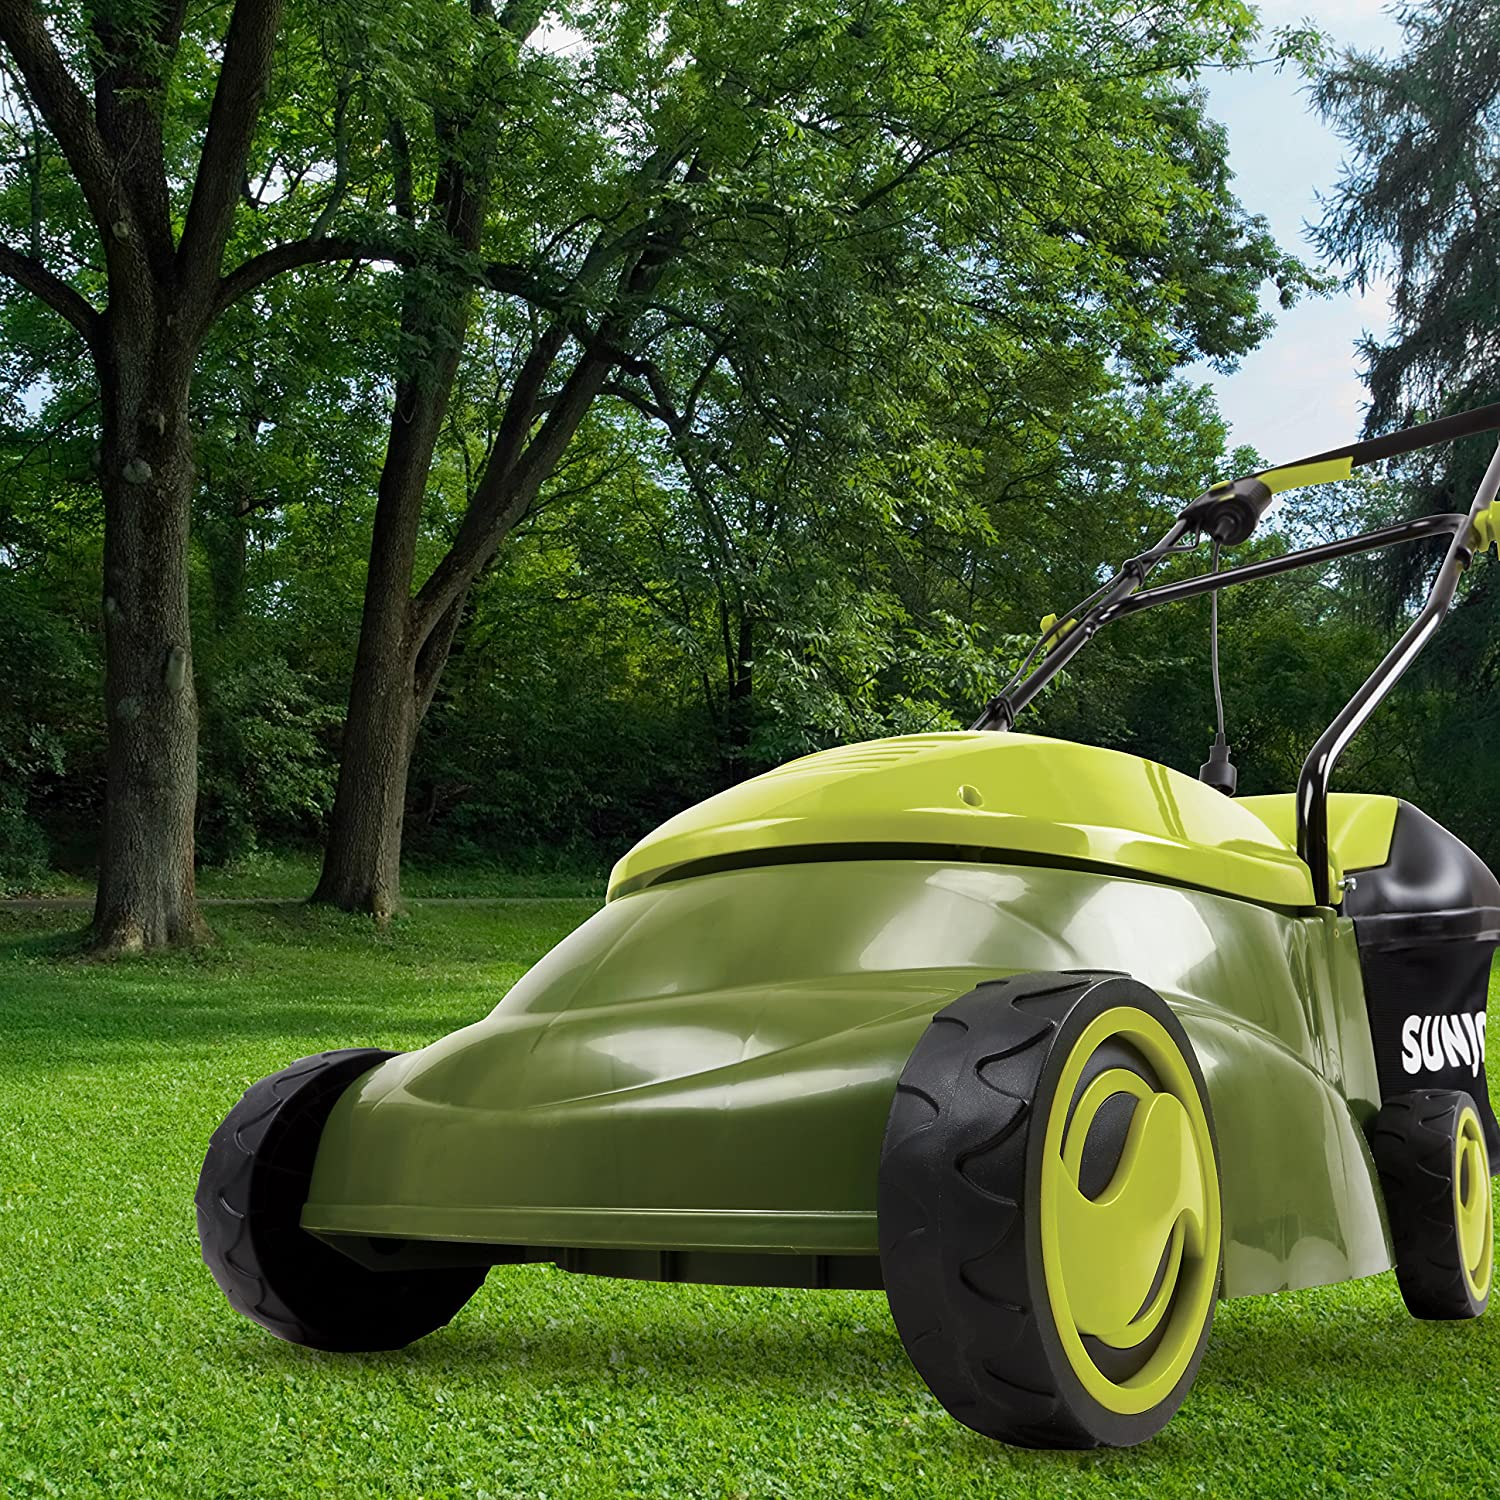 Sun Joe MJ401E-SJB Mow Joe 14-Inch 12 Amp Electric Lawn Mower With Grass Bag